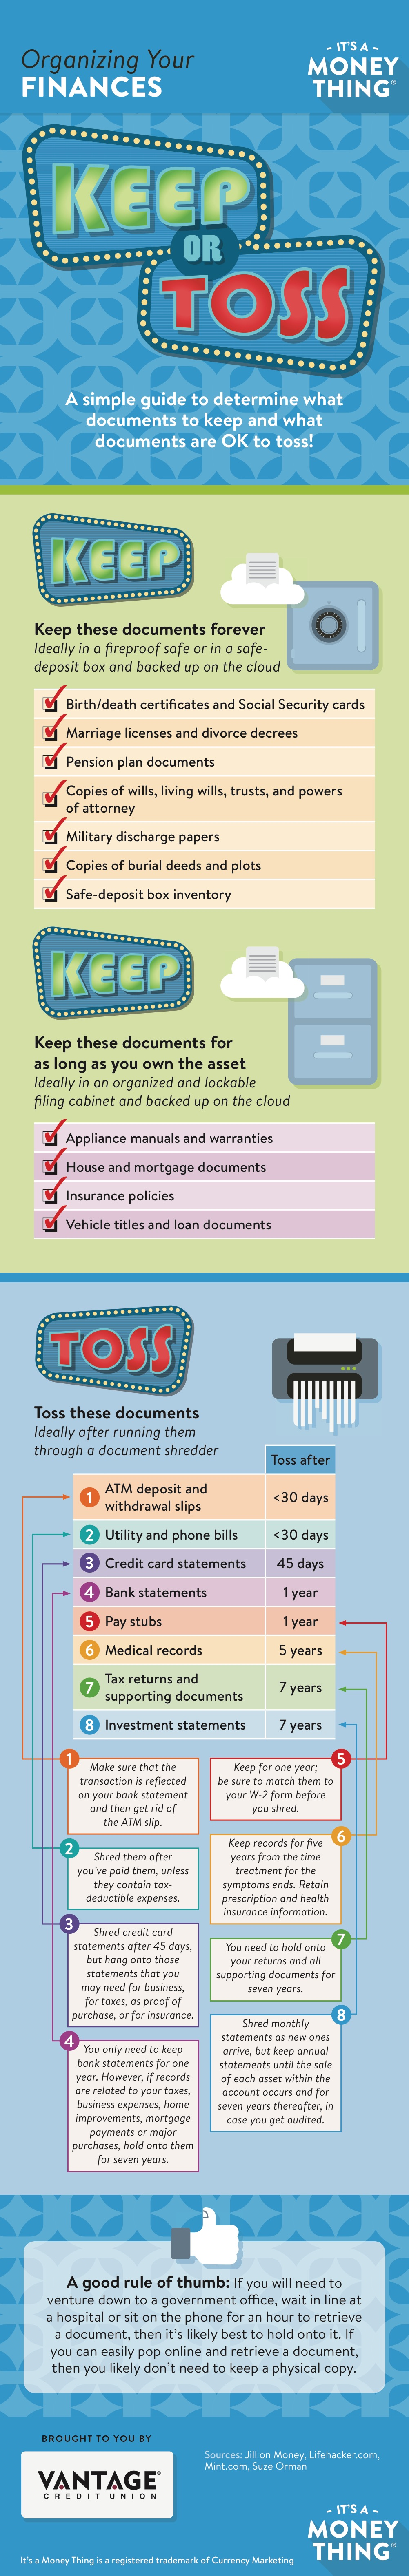 organizing-your-finances-infographic